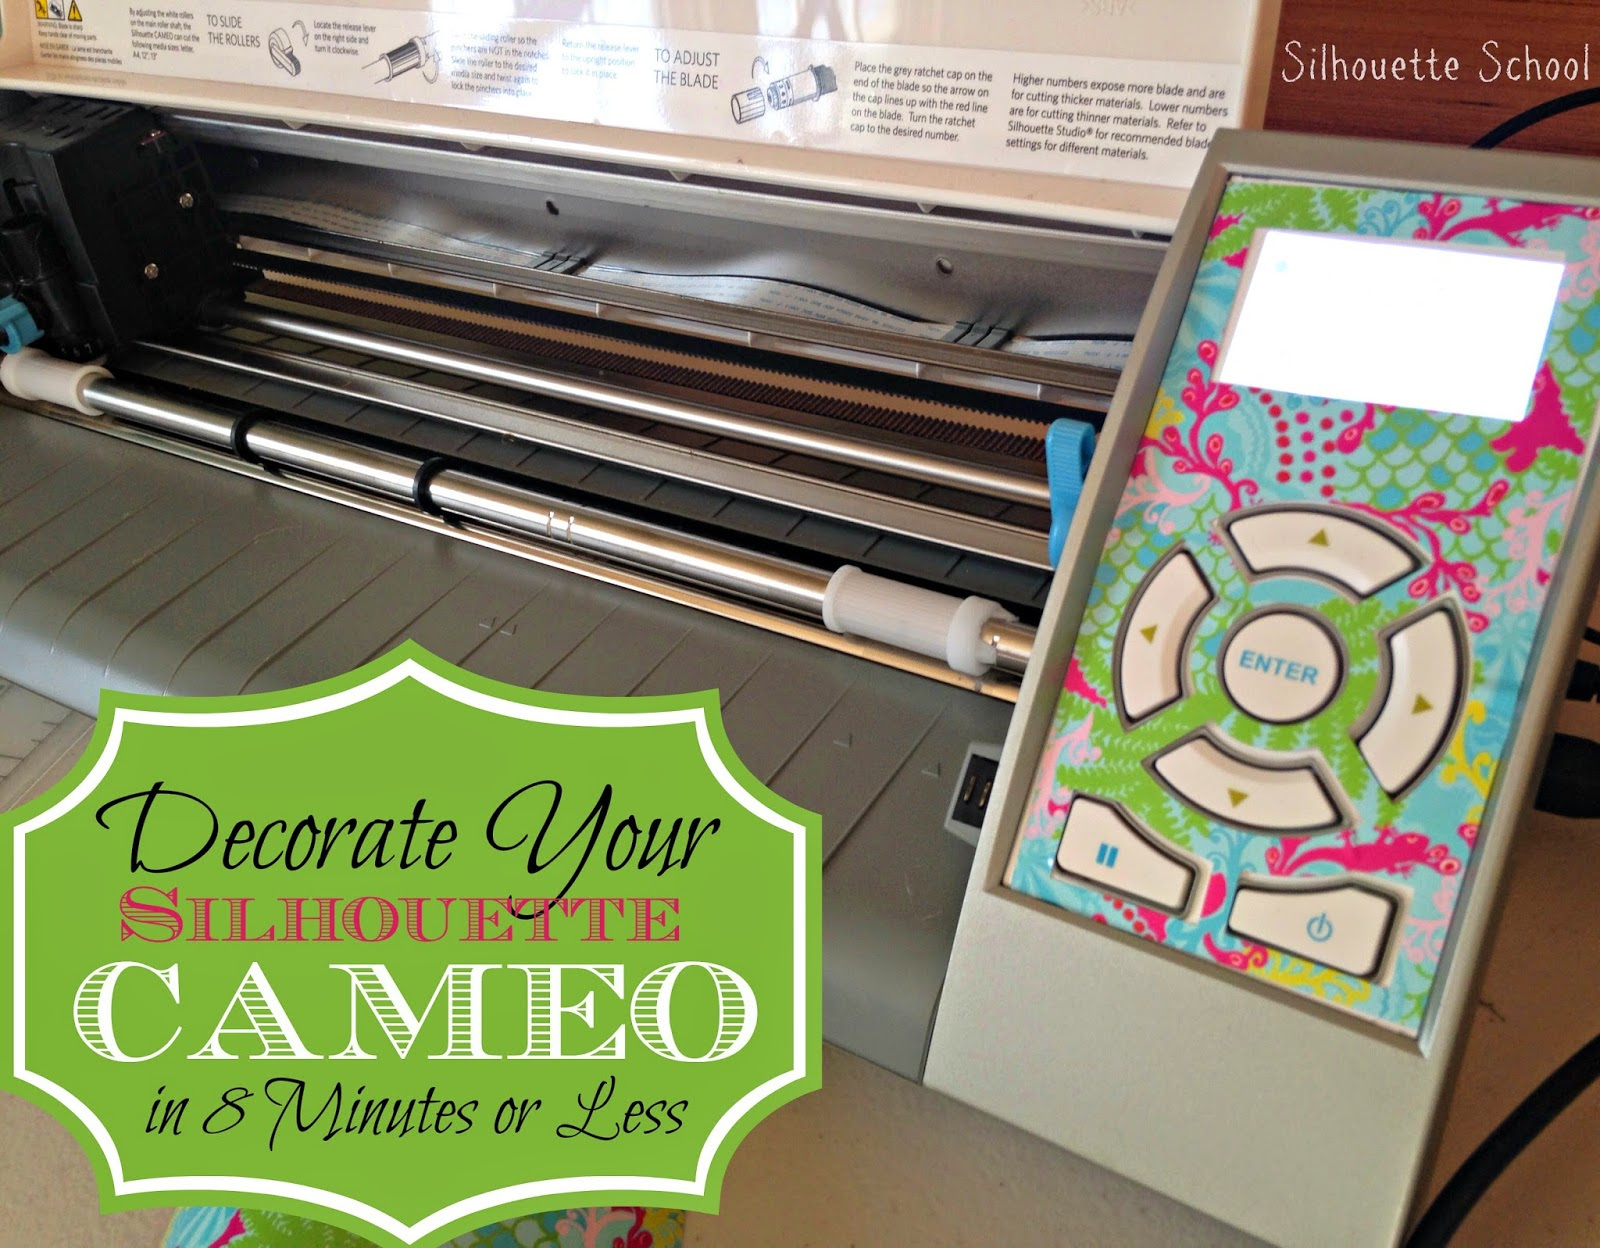 Silhouette Cameo, decorate, Silhouette tutorial, DIY, do it yourself